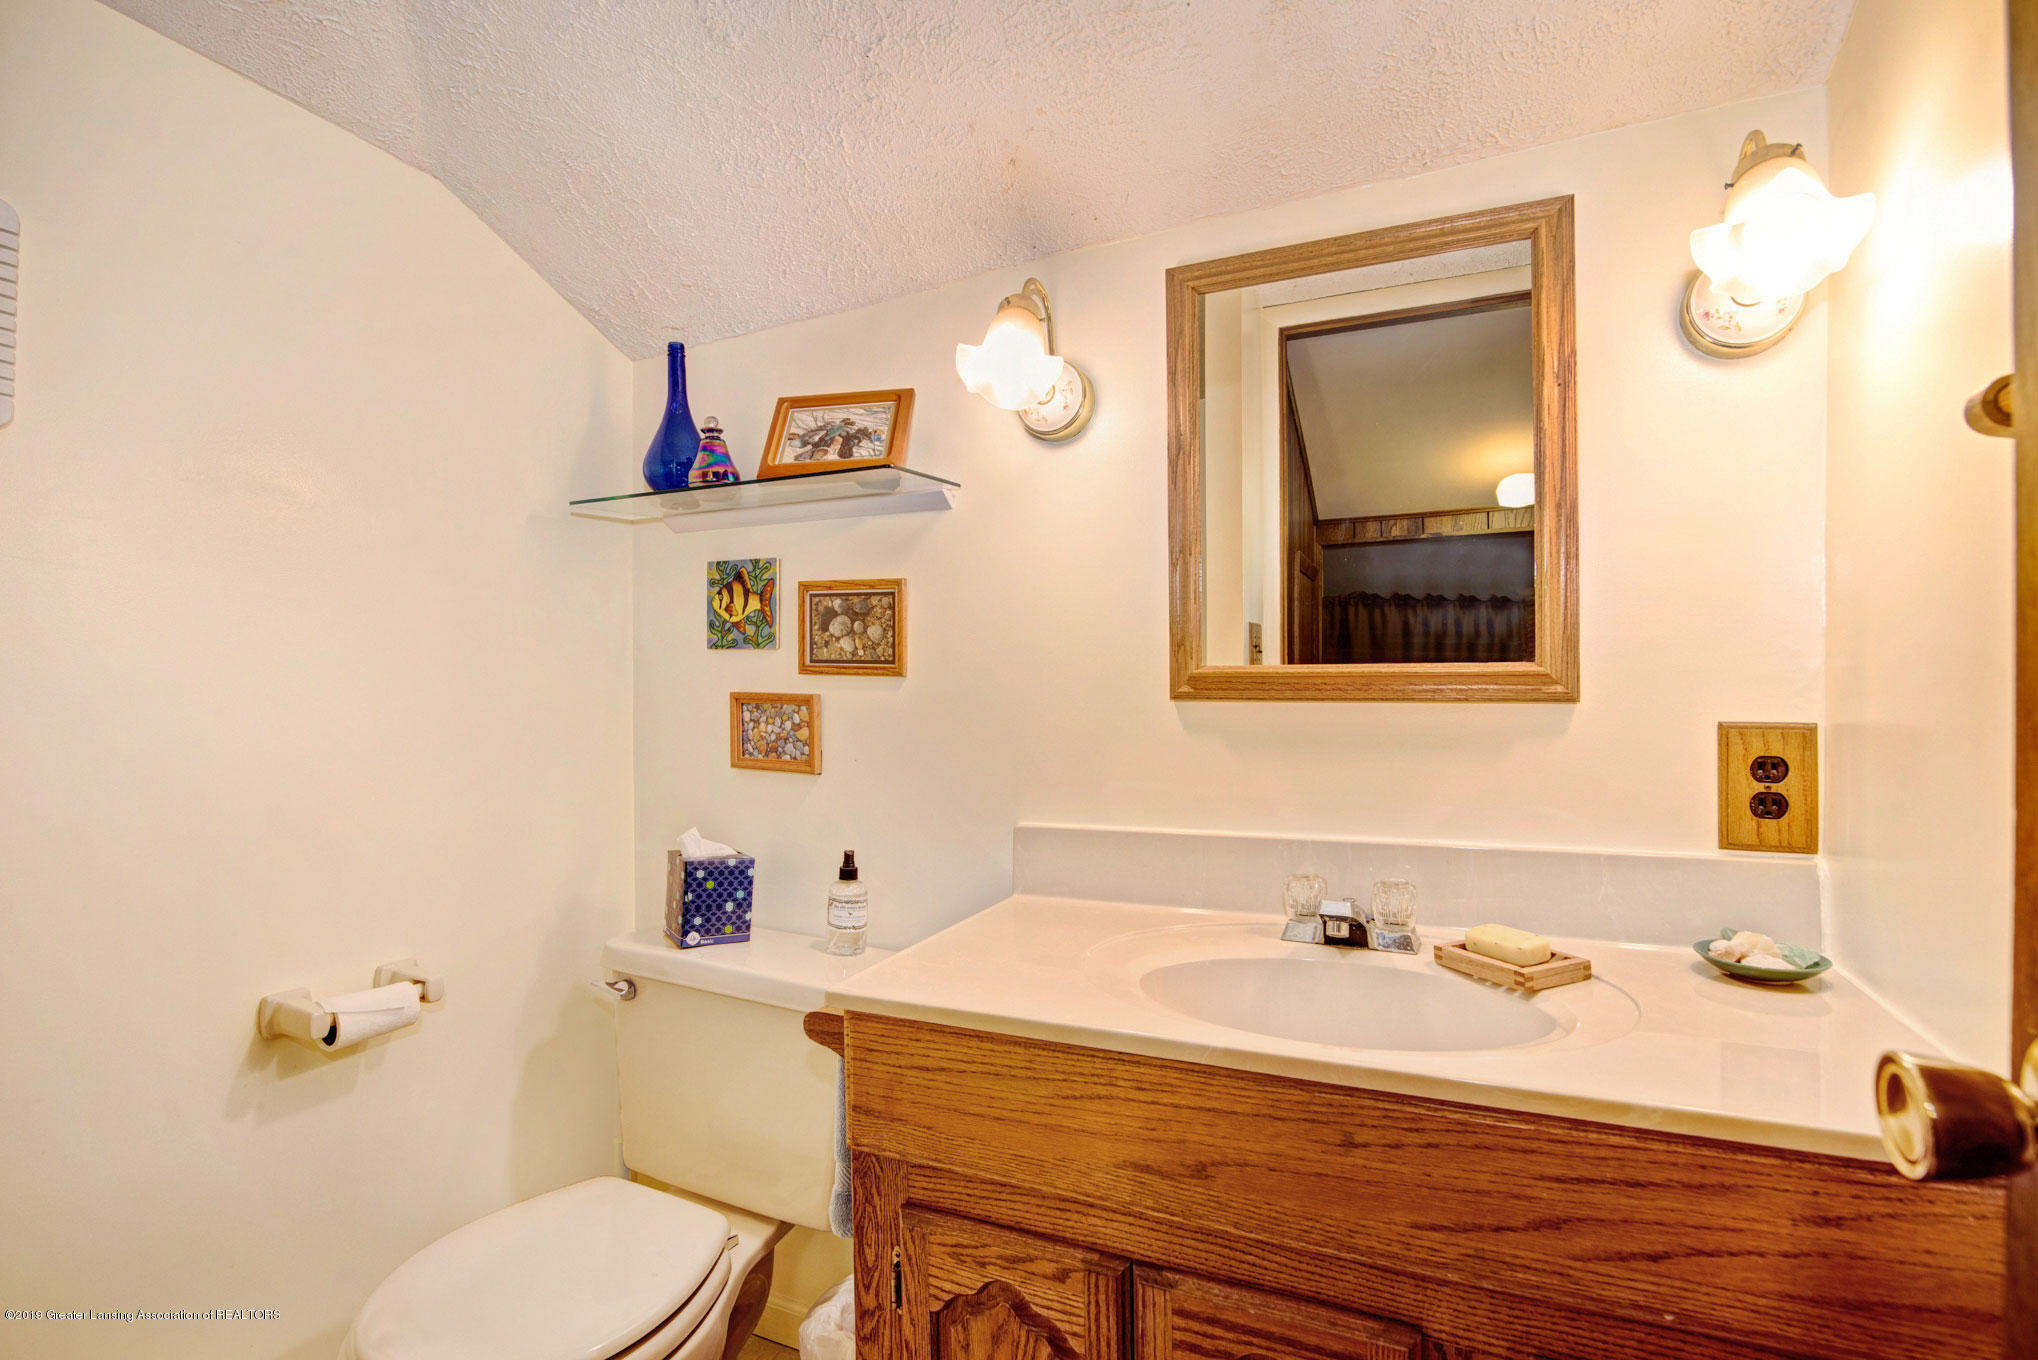 815 W Jefferson St - Bathroom - 25